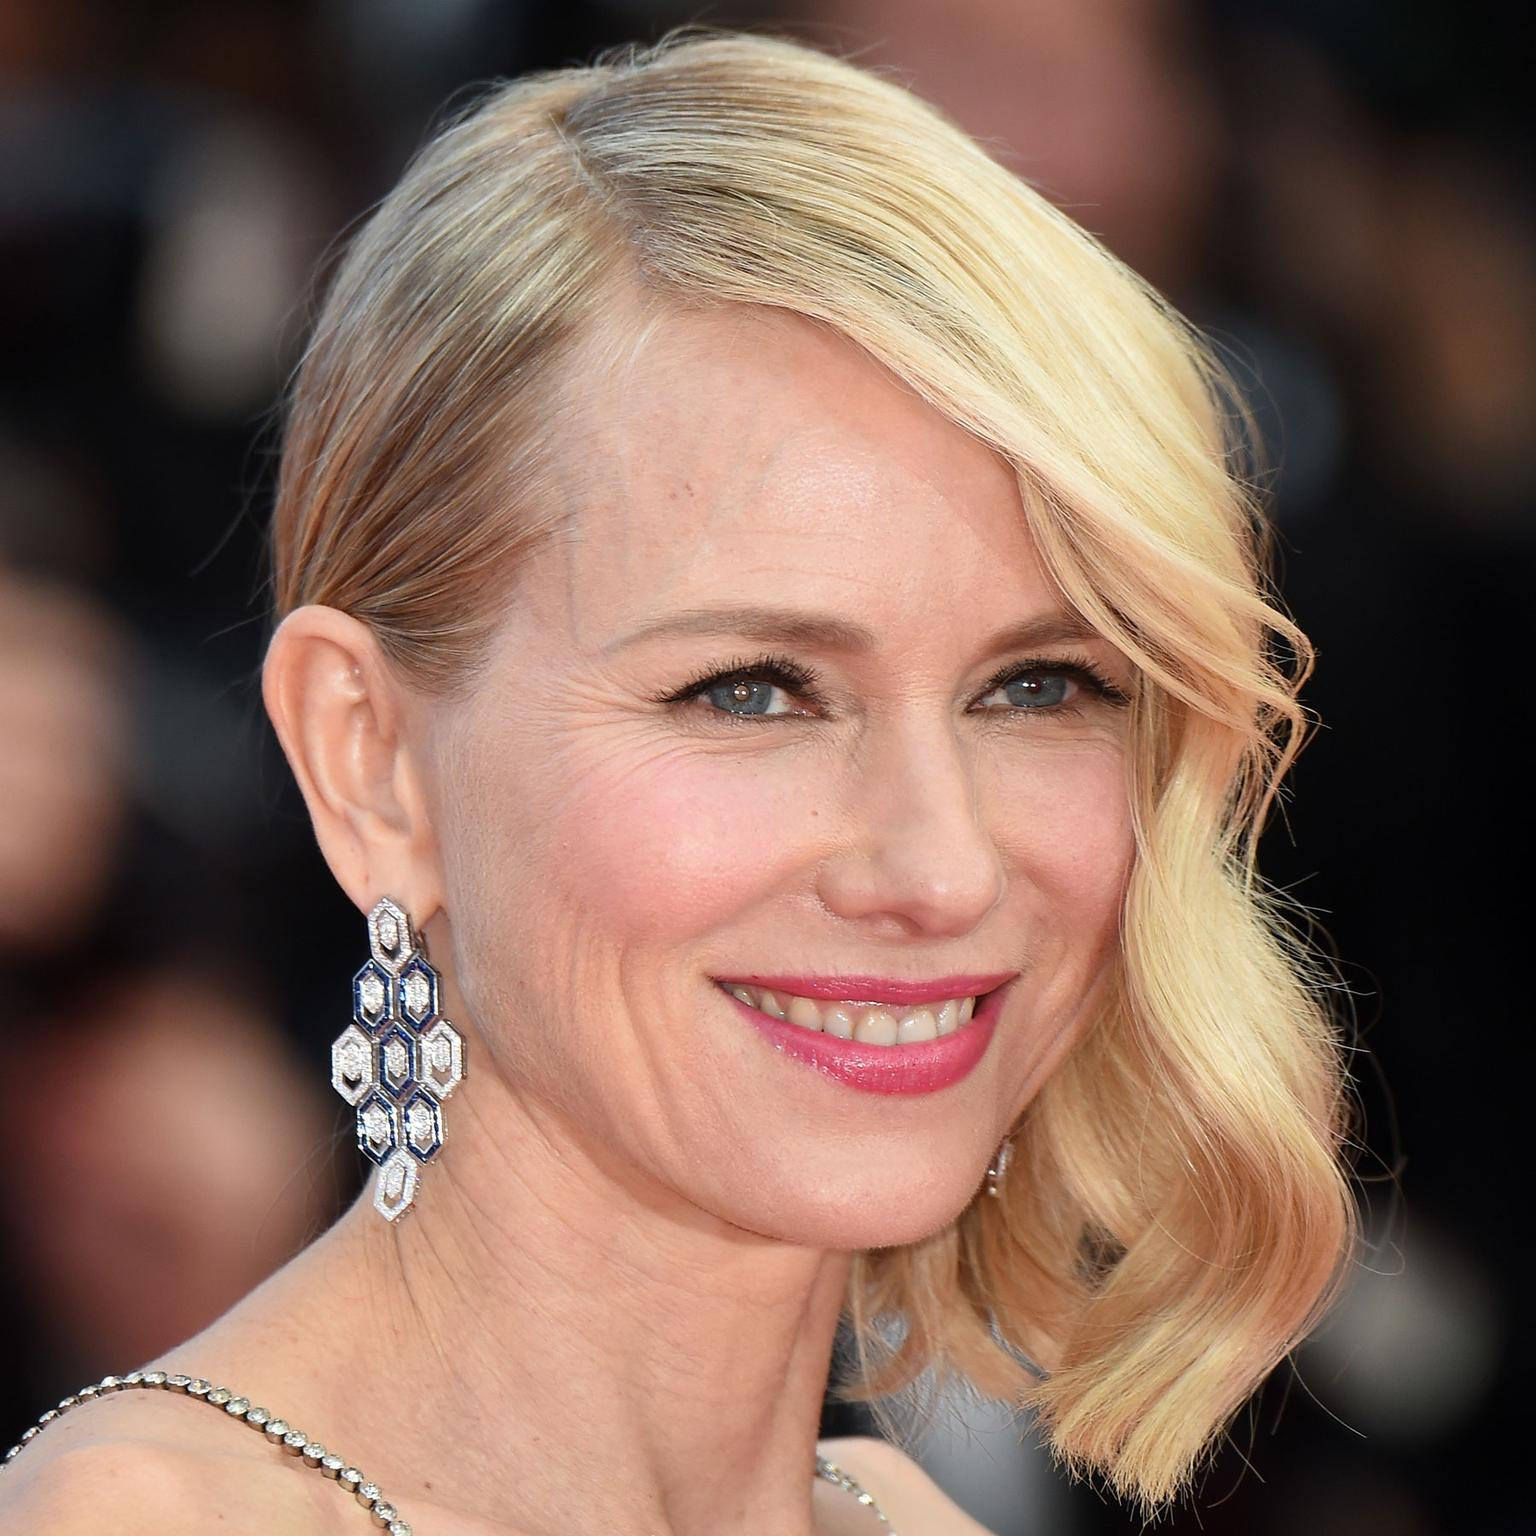 Cannes 2016 Day 2: Naomi Watts in Bulgari